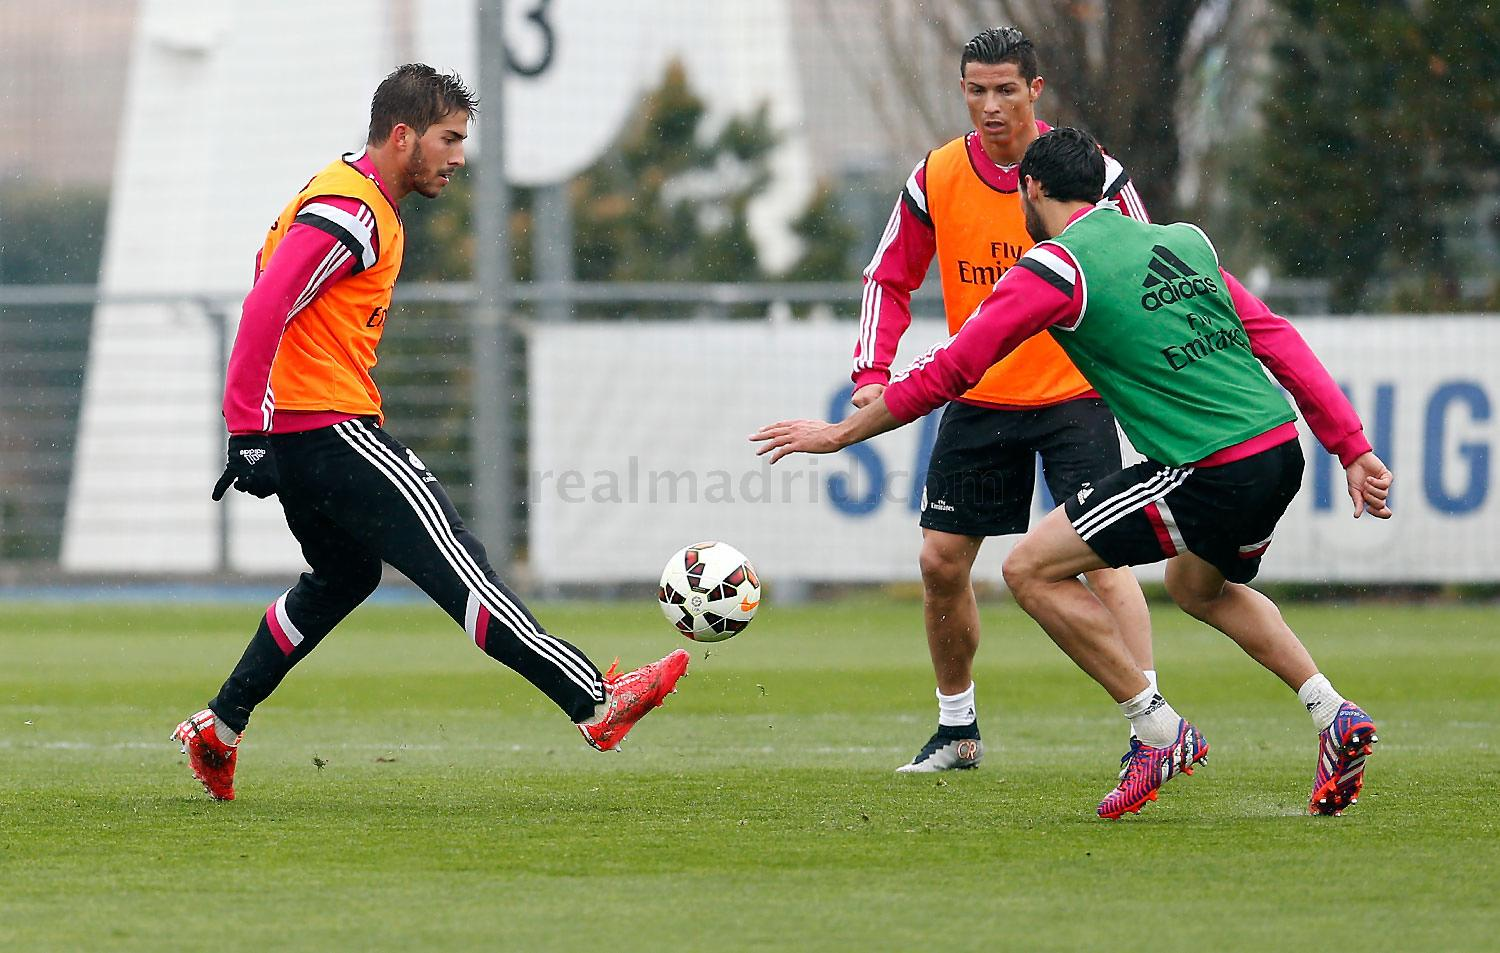 Real Madrid - Entrenamiento del Real Madrid - 18-03-2015